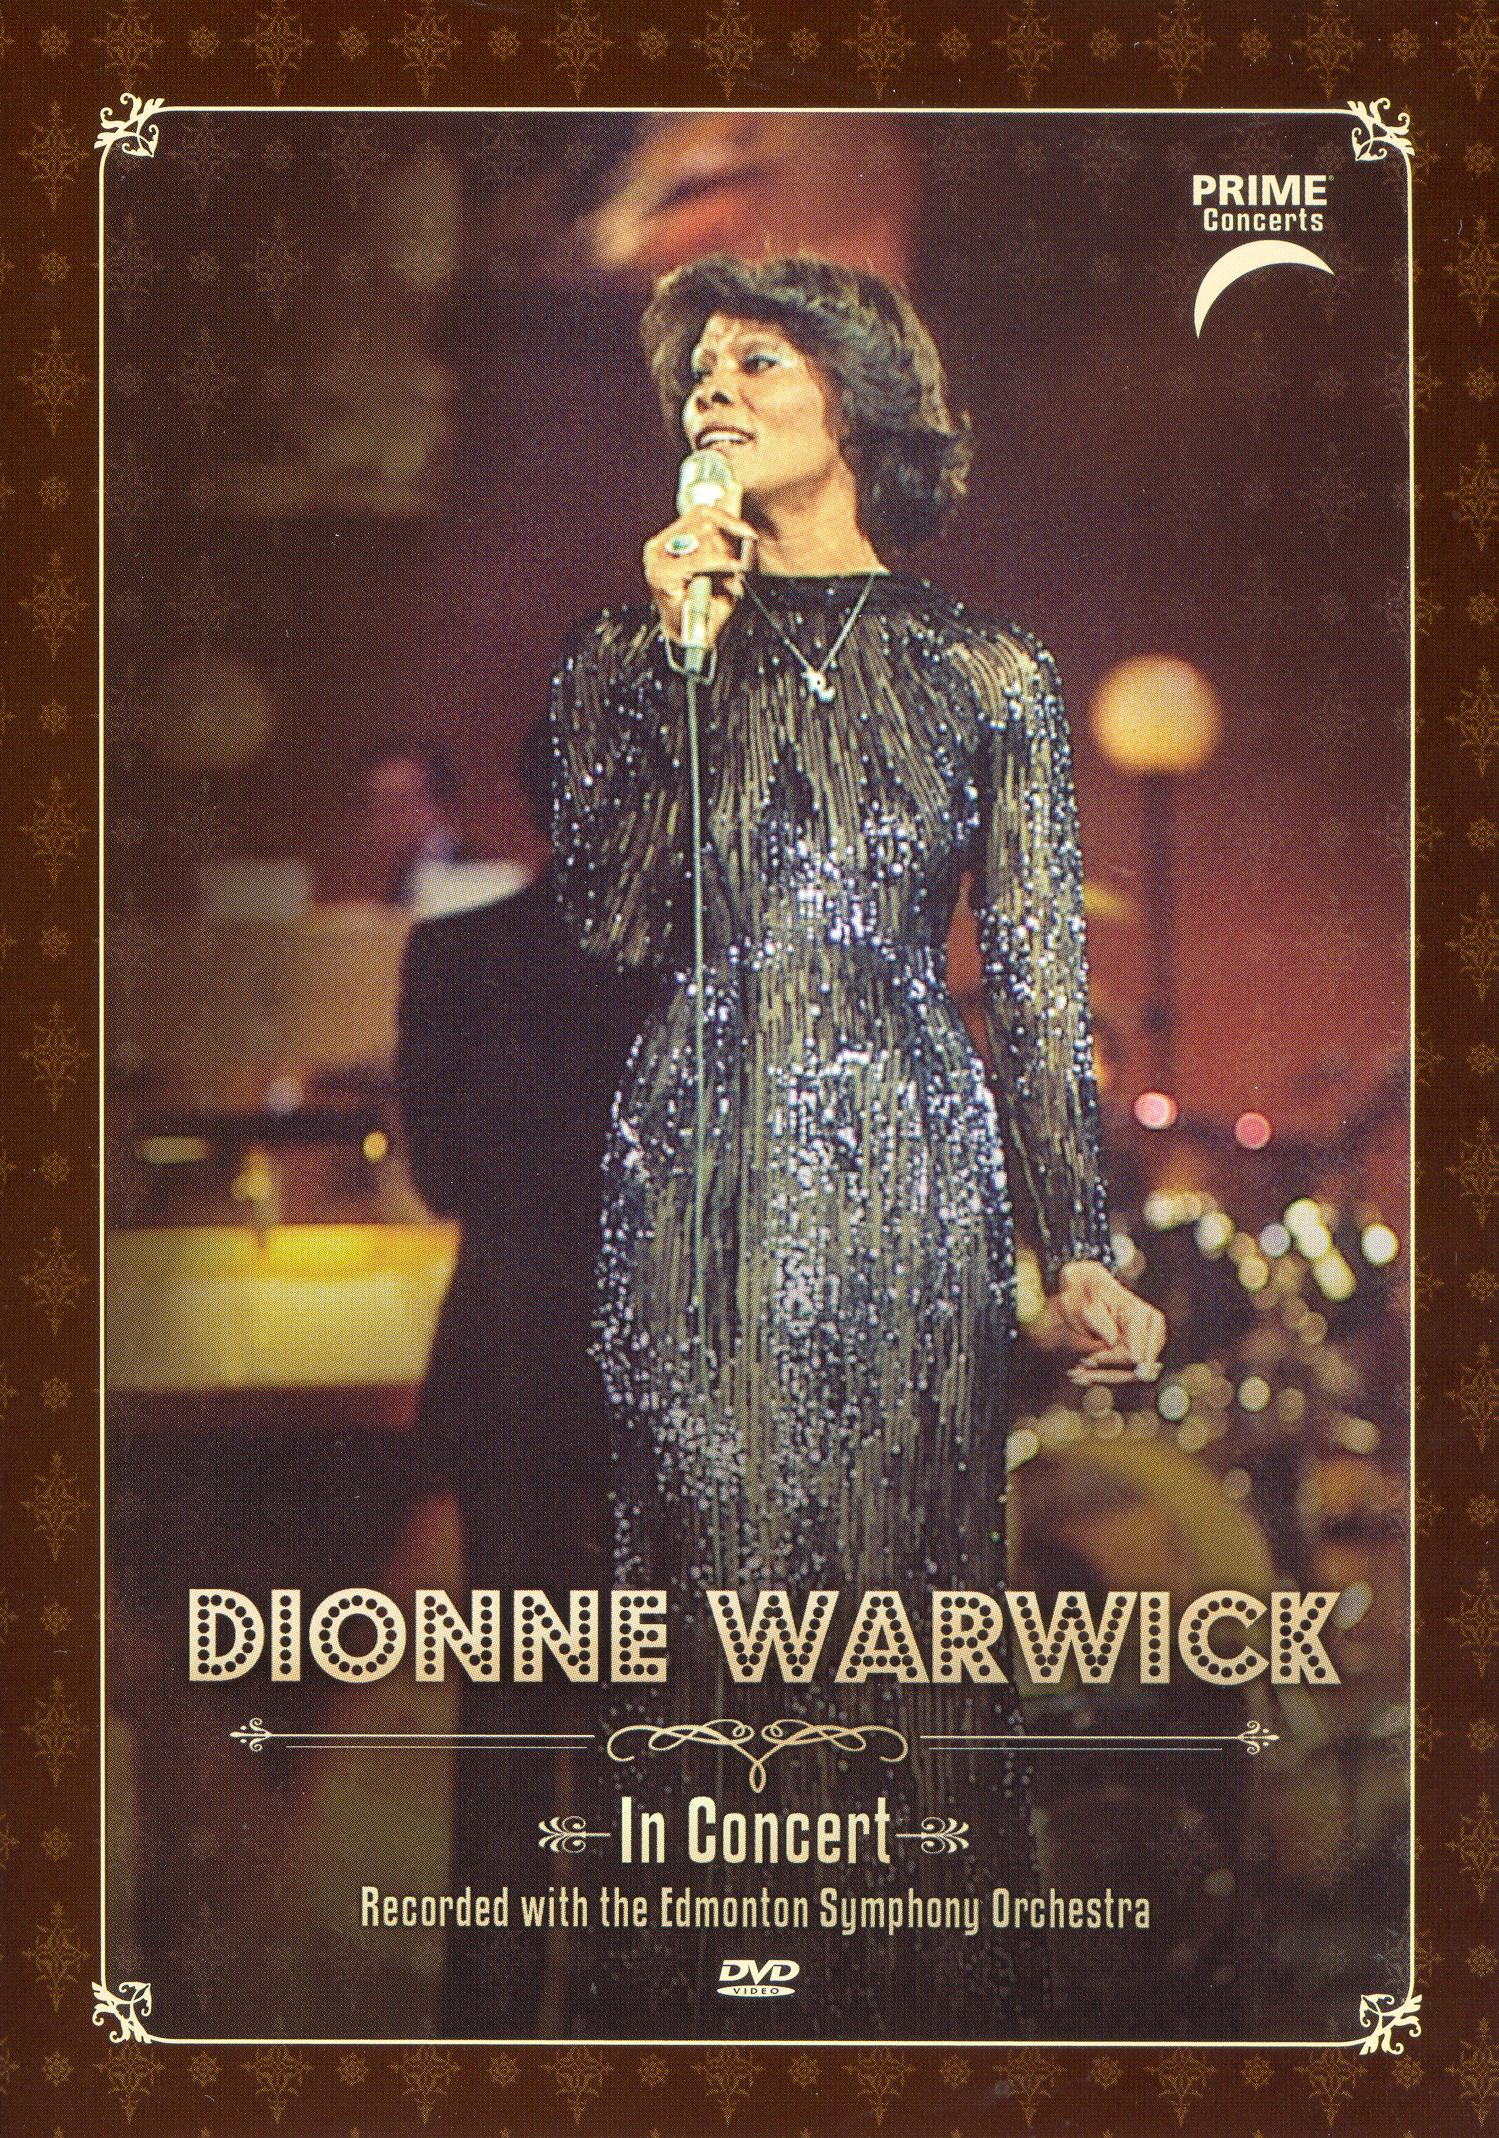 Dionne Warwick: Prime Concerts - In Concert with Edmonton Symphony